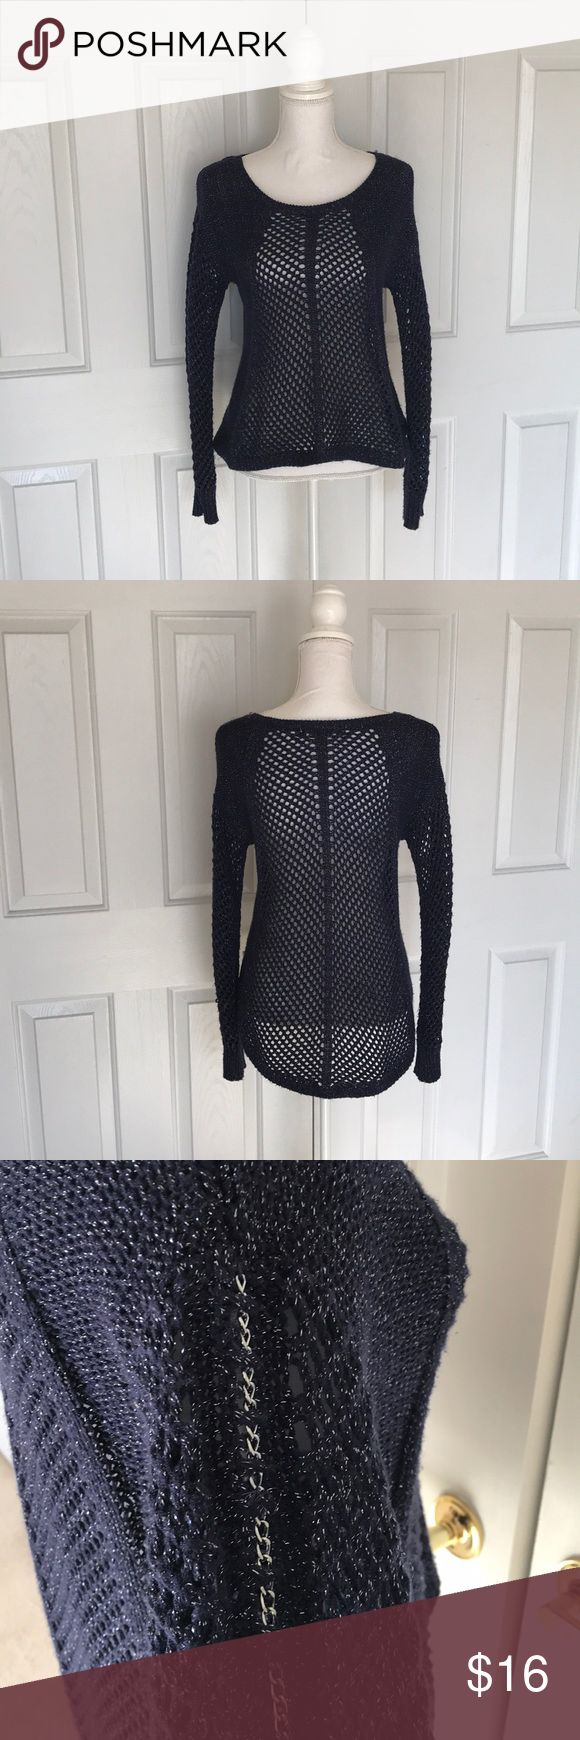 Eggplant Knit Sweater with Chain Detail Perfect condition. Hi-low effect Made of 80% acrylic, 13% polyester, and 7% metallic MEASUREMENTS:  Sleeve length: 24 inches Bust: 17 inches Length (in front/shorter side): 22 inches from shoulder Rock & Republic Sweaters